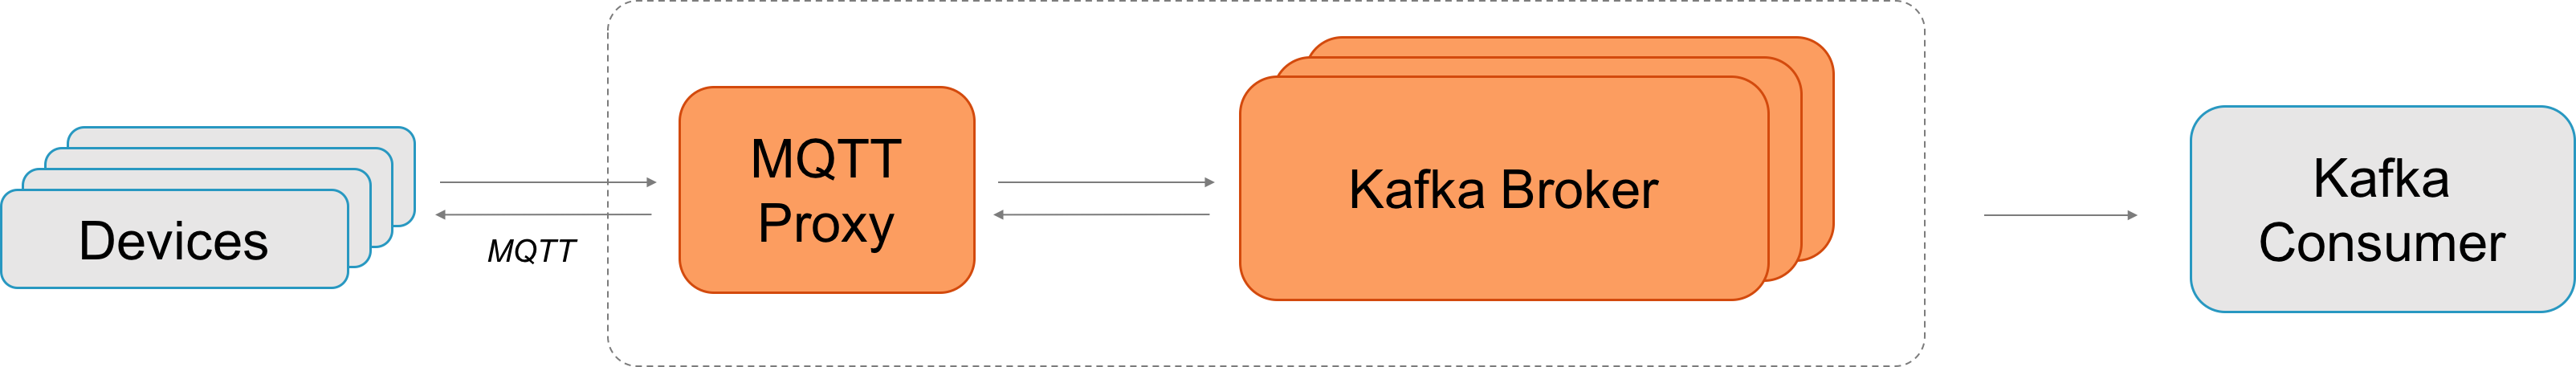 Apache Kafka and MQTT: End-to-End IoT Integration - DZone IoT